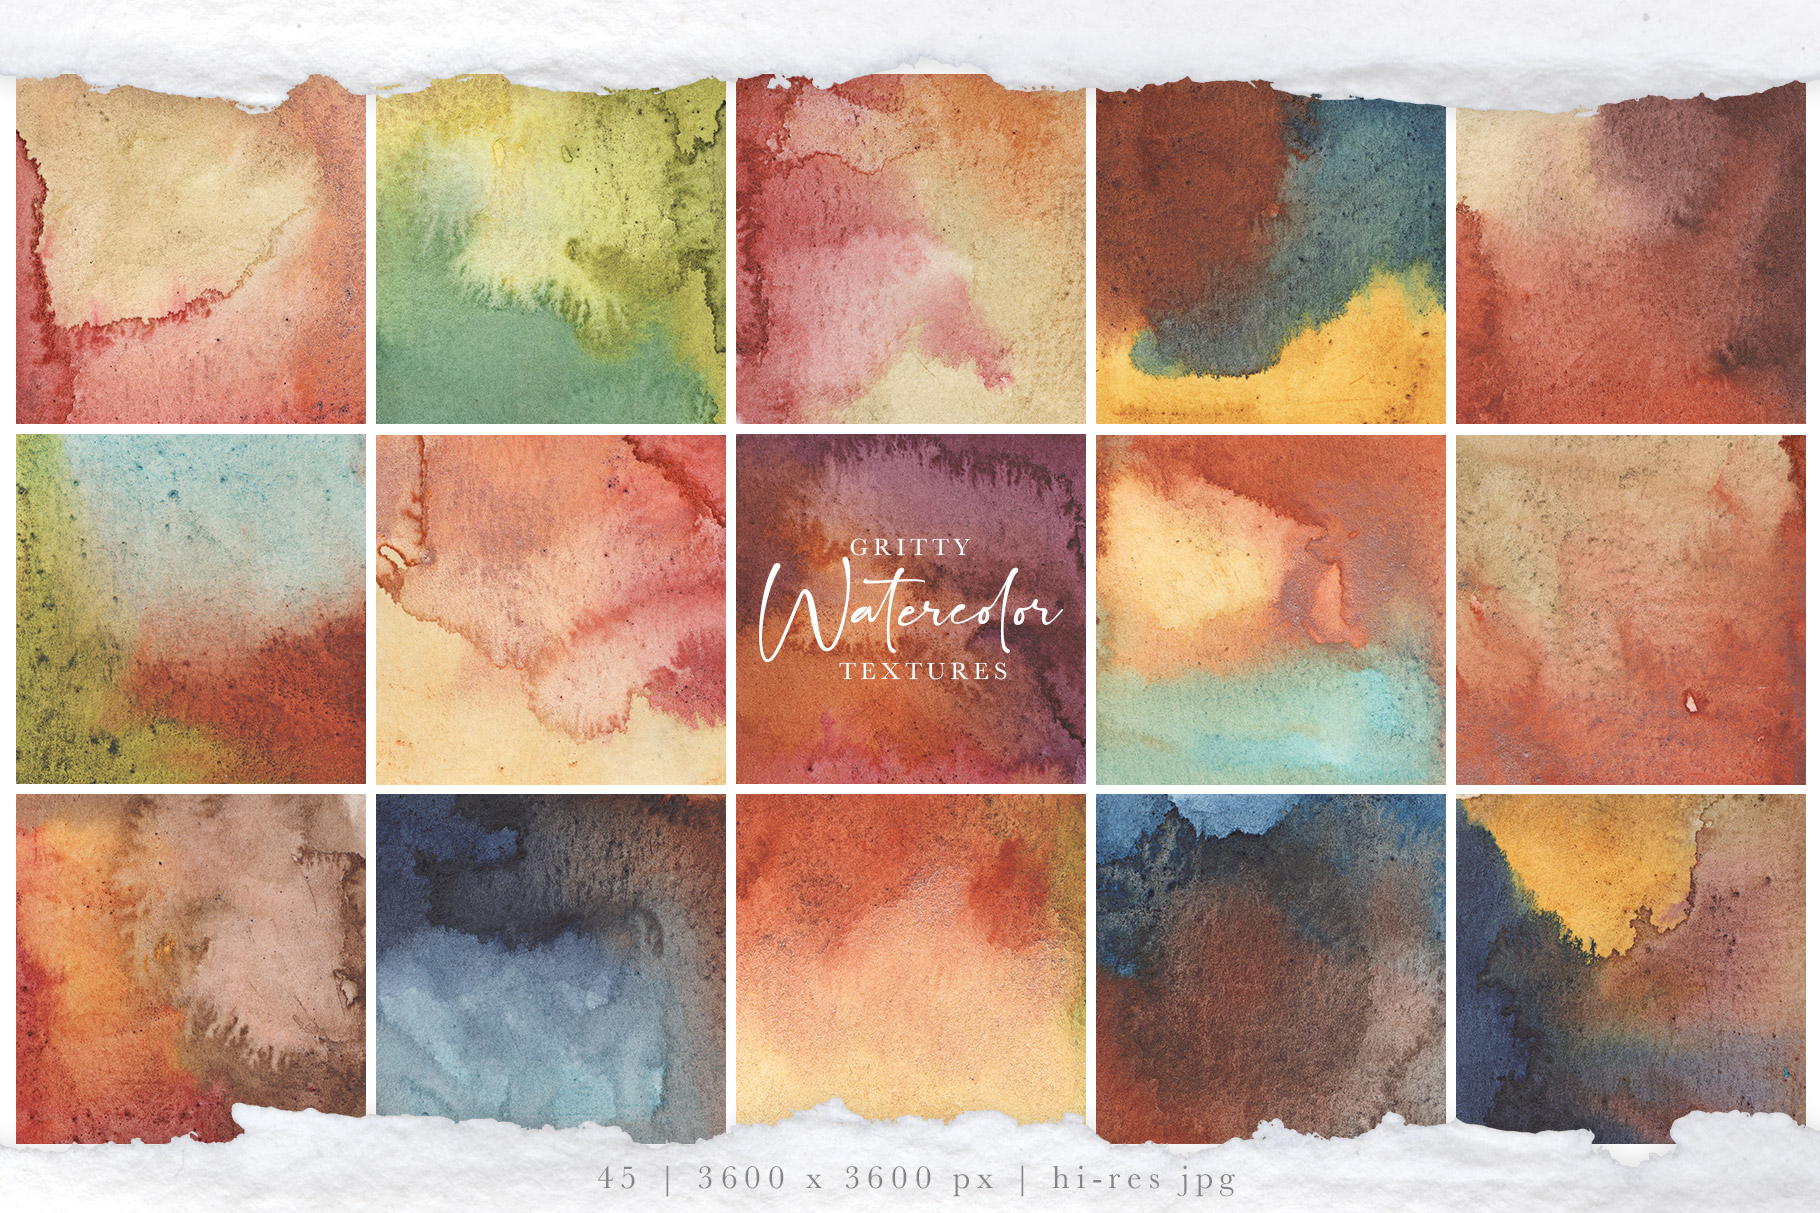 Gritty Watercolor Textures Vol. 1